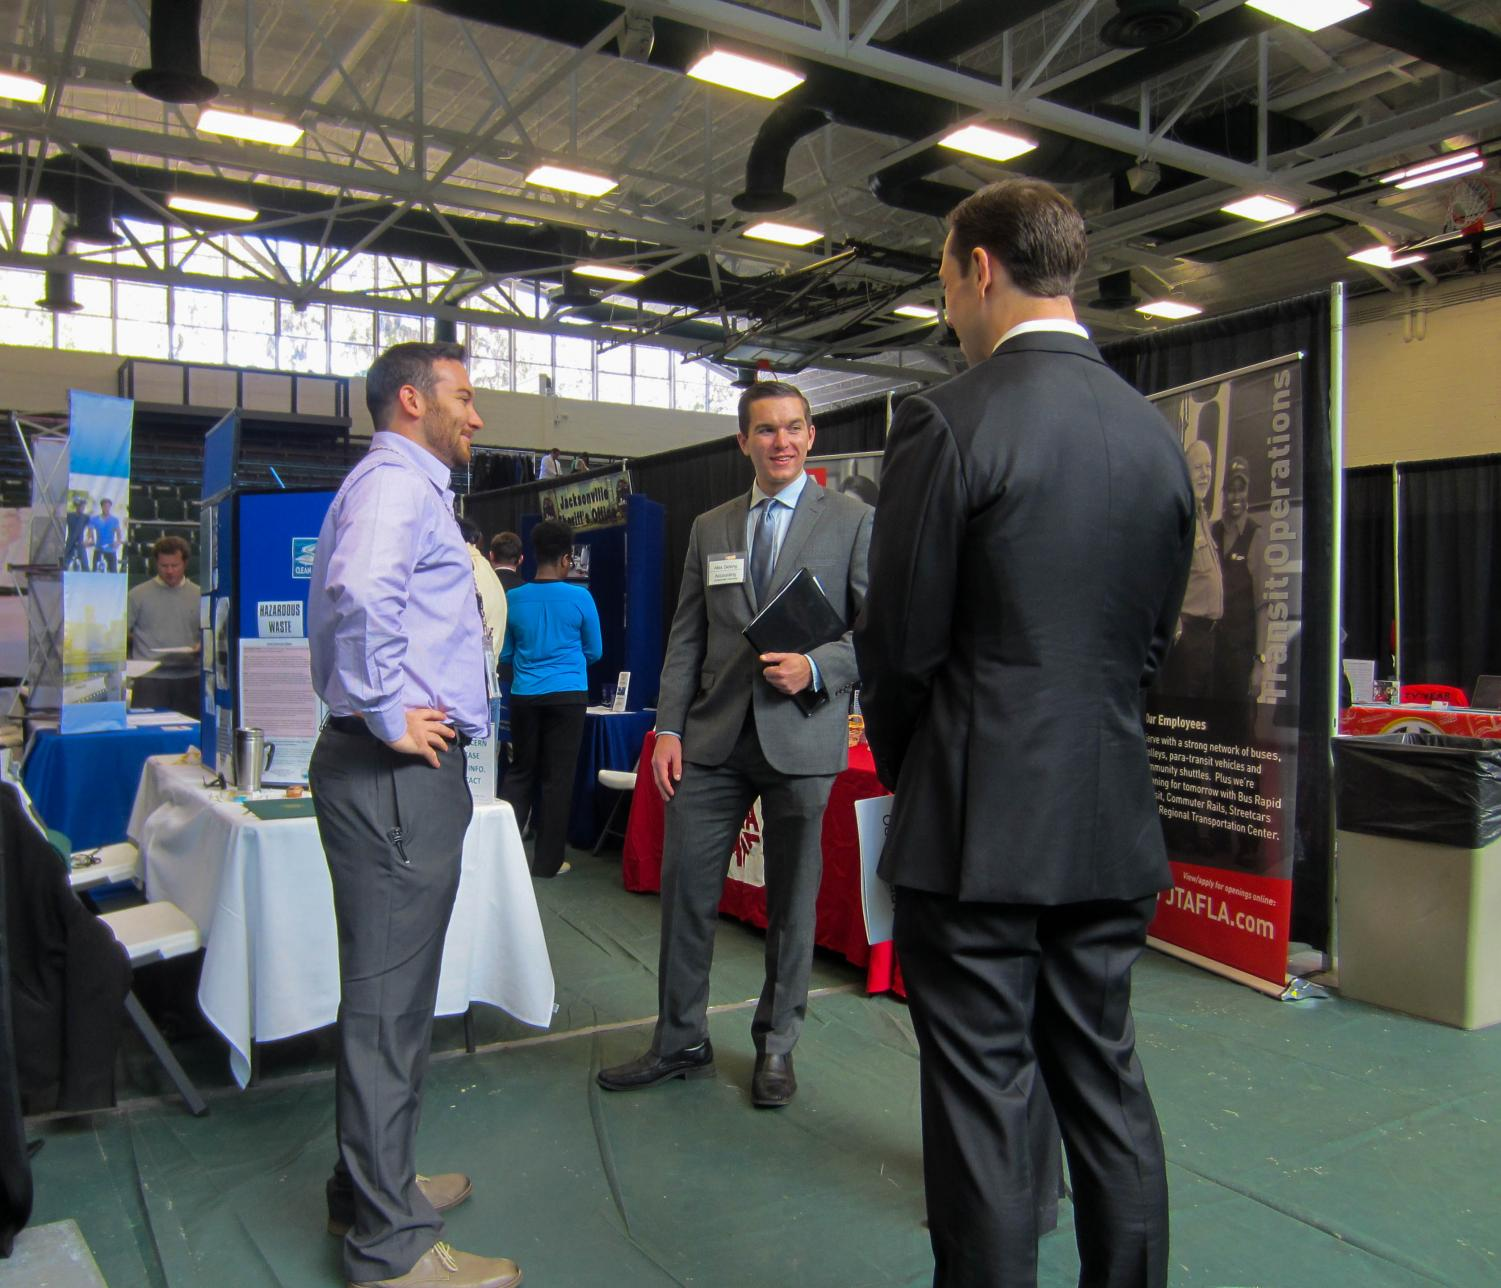 JU students Alex Delong and Pierce Klinic at the Career Expo hosted at the Swisher Gymnasium on Spring 2017.